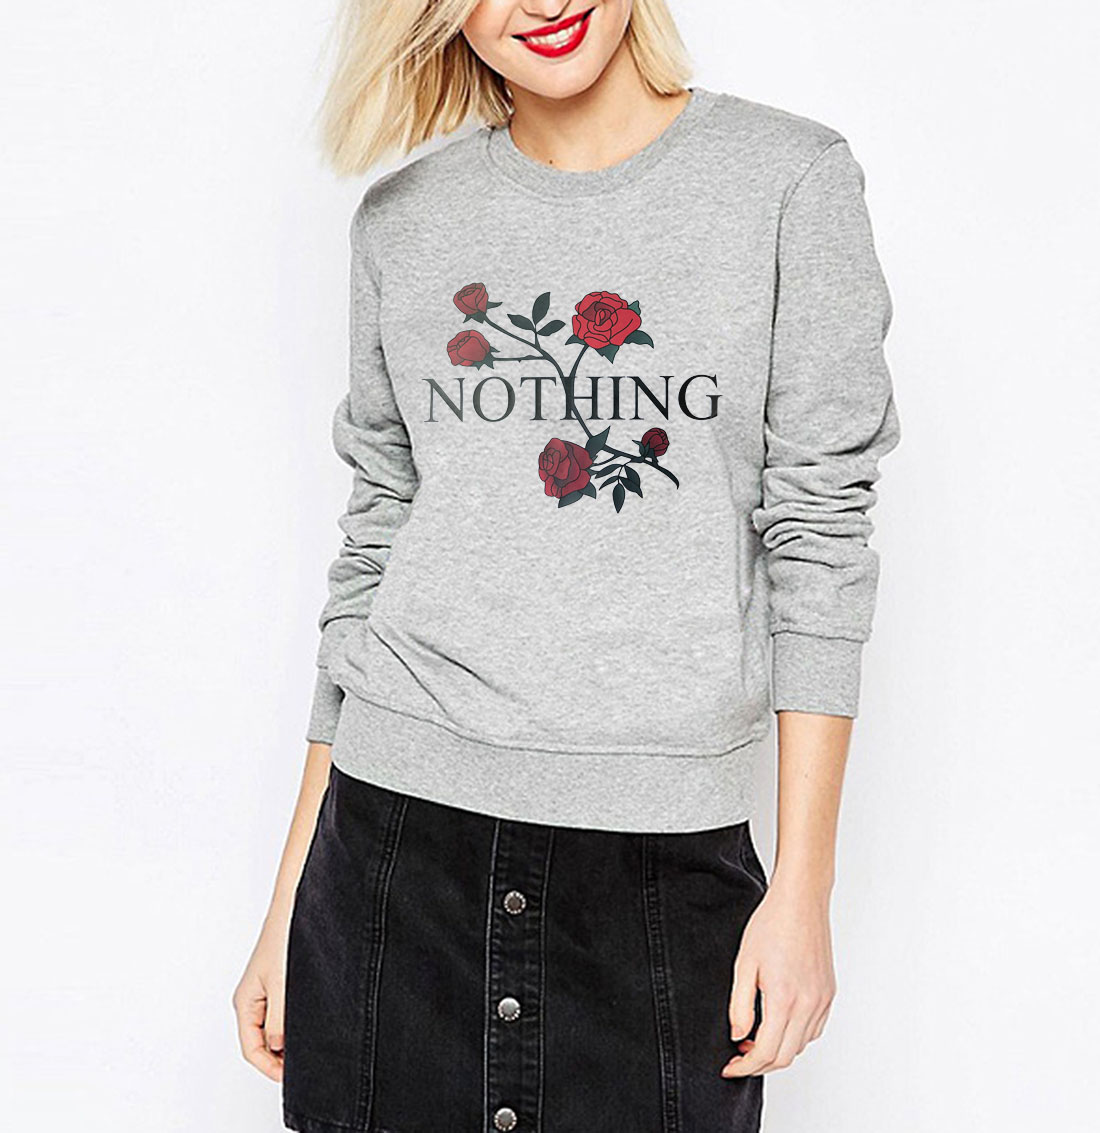 new arrival funny Nothing Letter Print sweatshirt kawaii Rose printing hoodies women 17 autumn winter casual fleece tracksuits 3